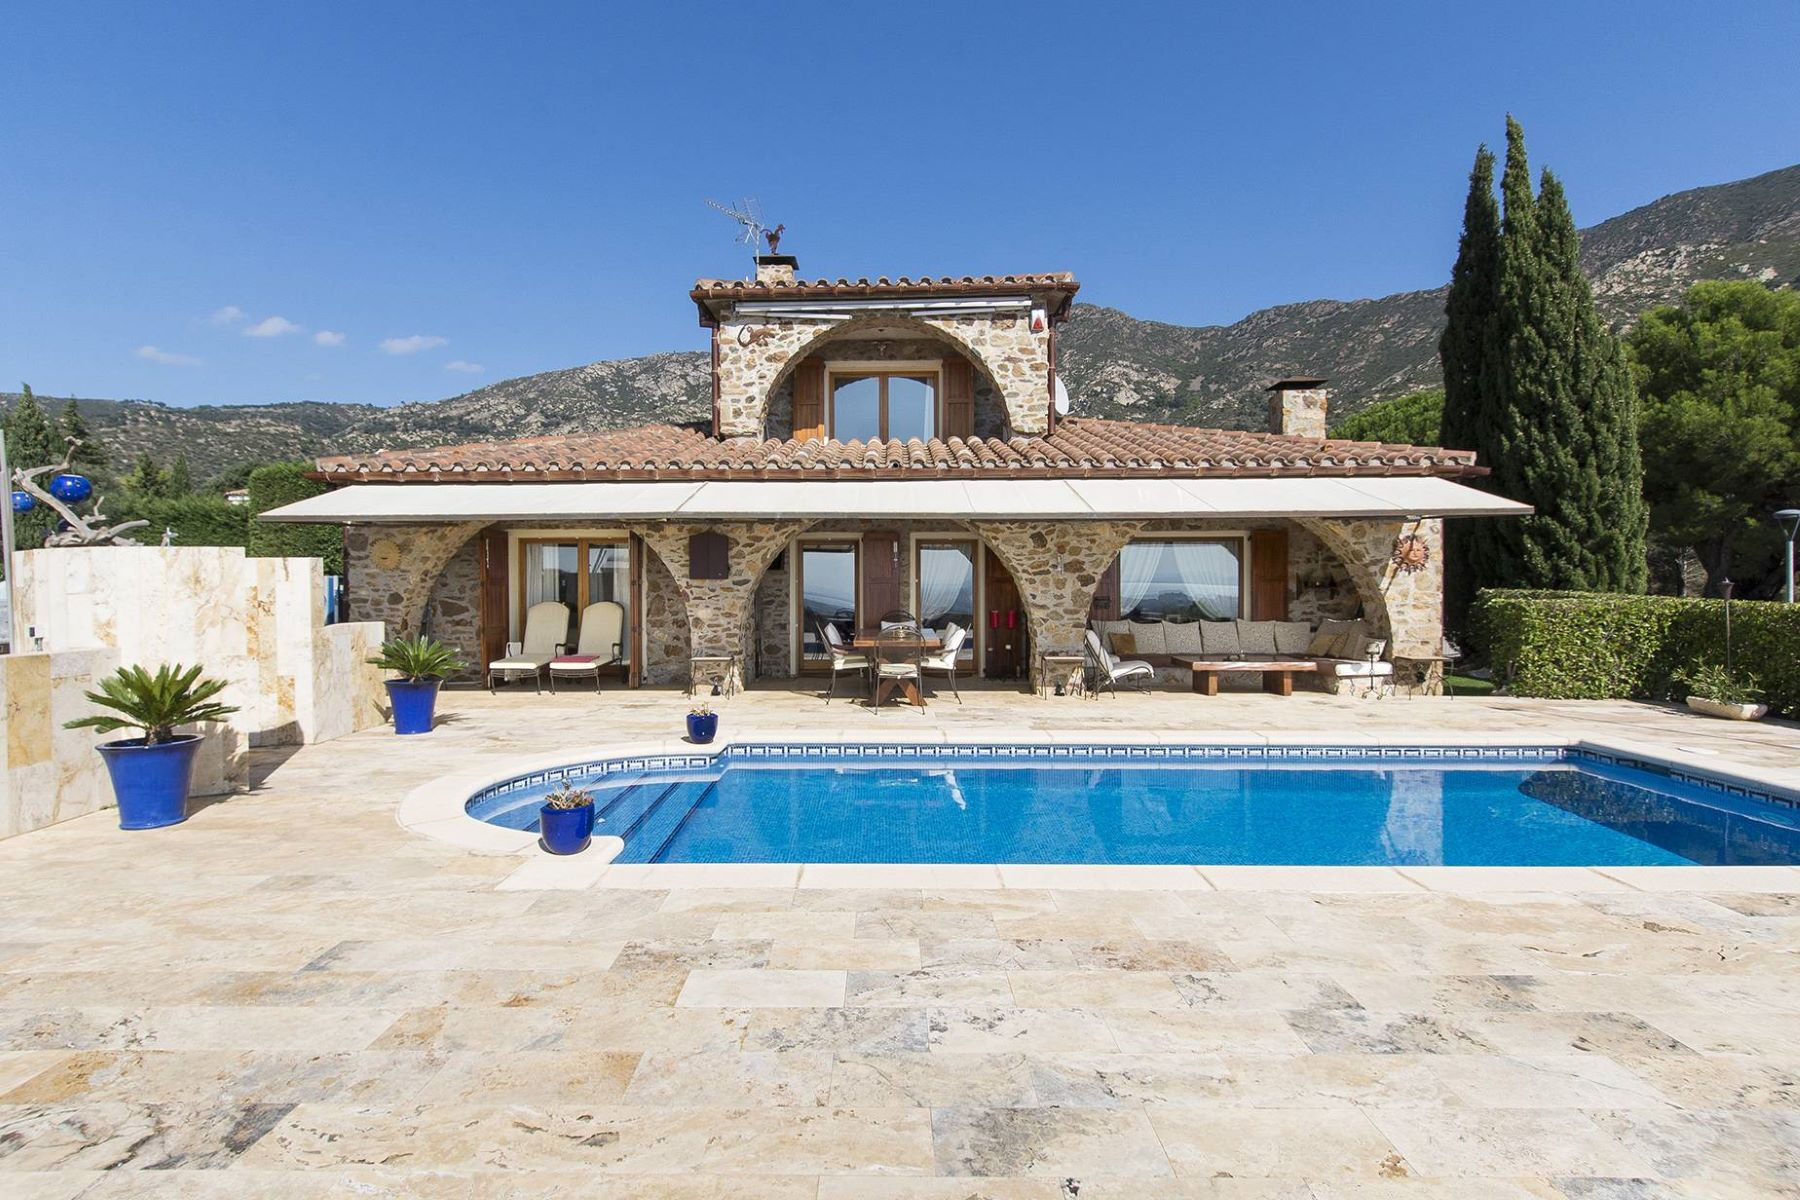 Single Family Home for Sale at Very nice House in Palau Saverdera Roses, Costa Brava, 17480 Spain